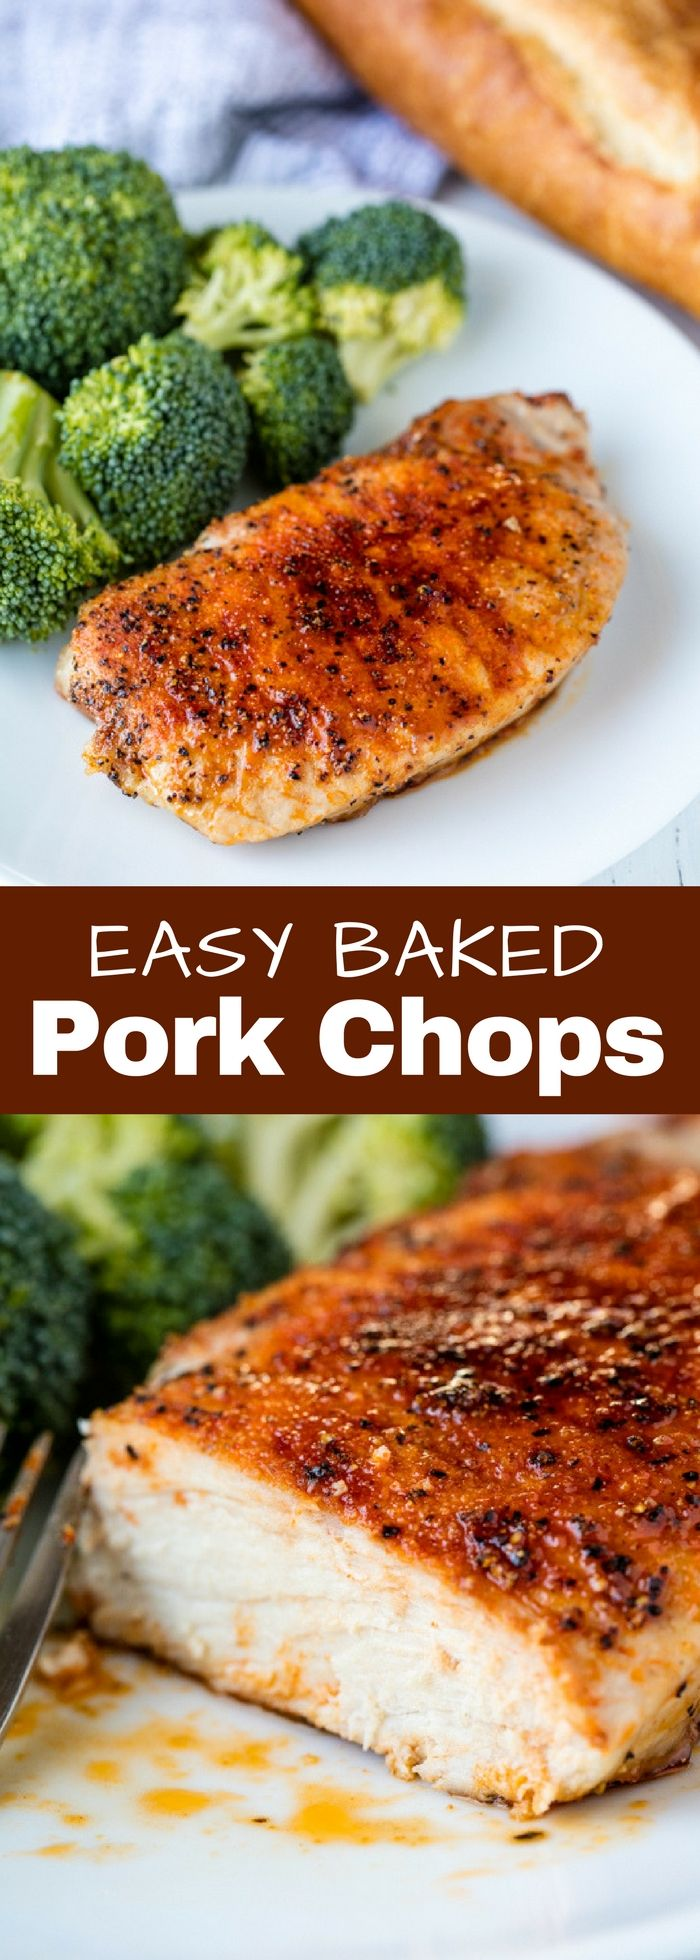 These Easy Baked Pork Chops only require a few spices to really make them stand out. They are juicy, tender, and full of flavor.